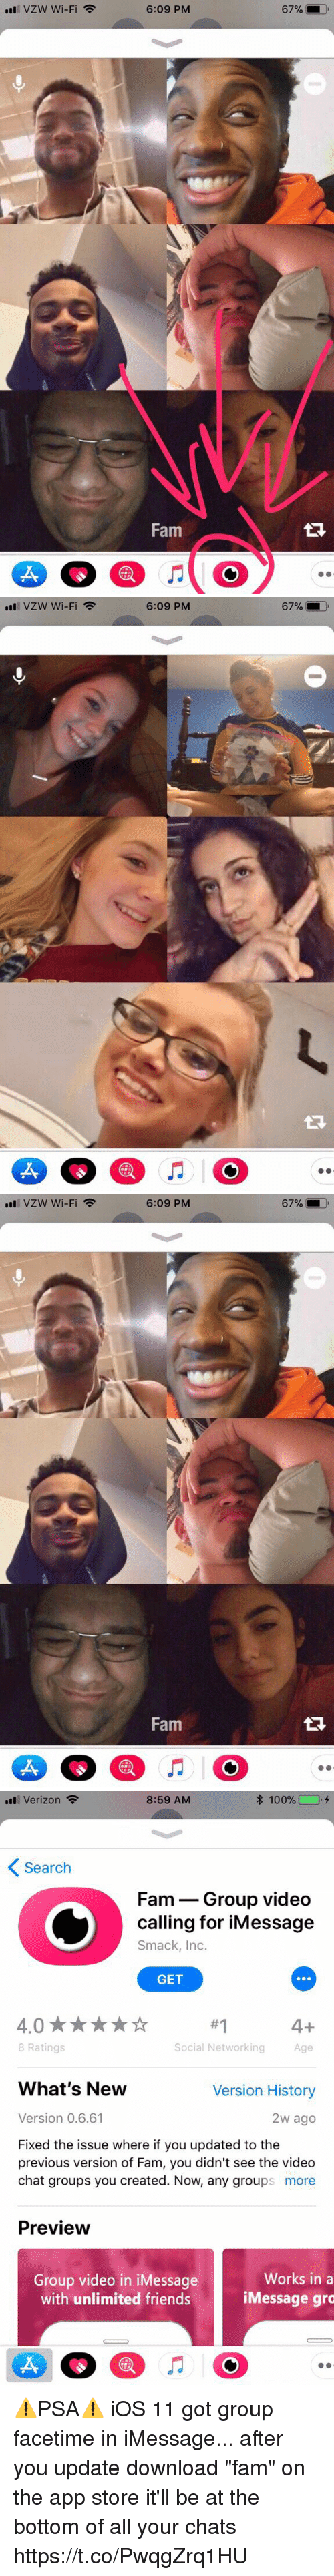 """Anaconda, Facetime, and Fam: Il VZW Wi-Fi  6:09 PM  67%  Fam   ill VZW Wi-Fi  6:09 PM   all VZW Wi-Fi  6:09 PM  Fam   11 Verizon  8:59 AM  100% (  +  Search  Fam- Group video  calling for iMessage  Smack, Inc.  GET  #1  1  Age  8 Ratings  Social Networking  What's New  Version History  Version 0.6.61  2w ago  Fixed the issue where if you updated to the  previous version of Fam, you didn't see the video  chat groups you created. Now, any groups more  Preview  Group video in iMessage  with unlimited friends  Works in a  iMessage gro ⚠️PSA⚠️ iOS 11 got group facetime in iMessage... after you update download """"fam"""" on the app store it'll be at the bottom of all your chats https://t.co/PwqgZrq1HU"""